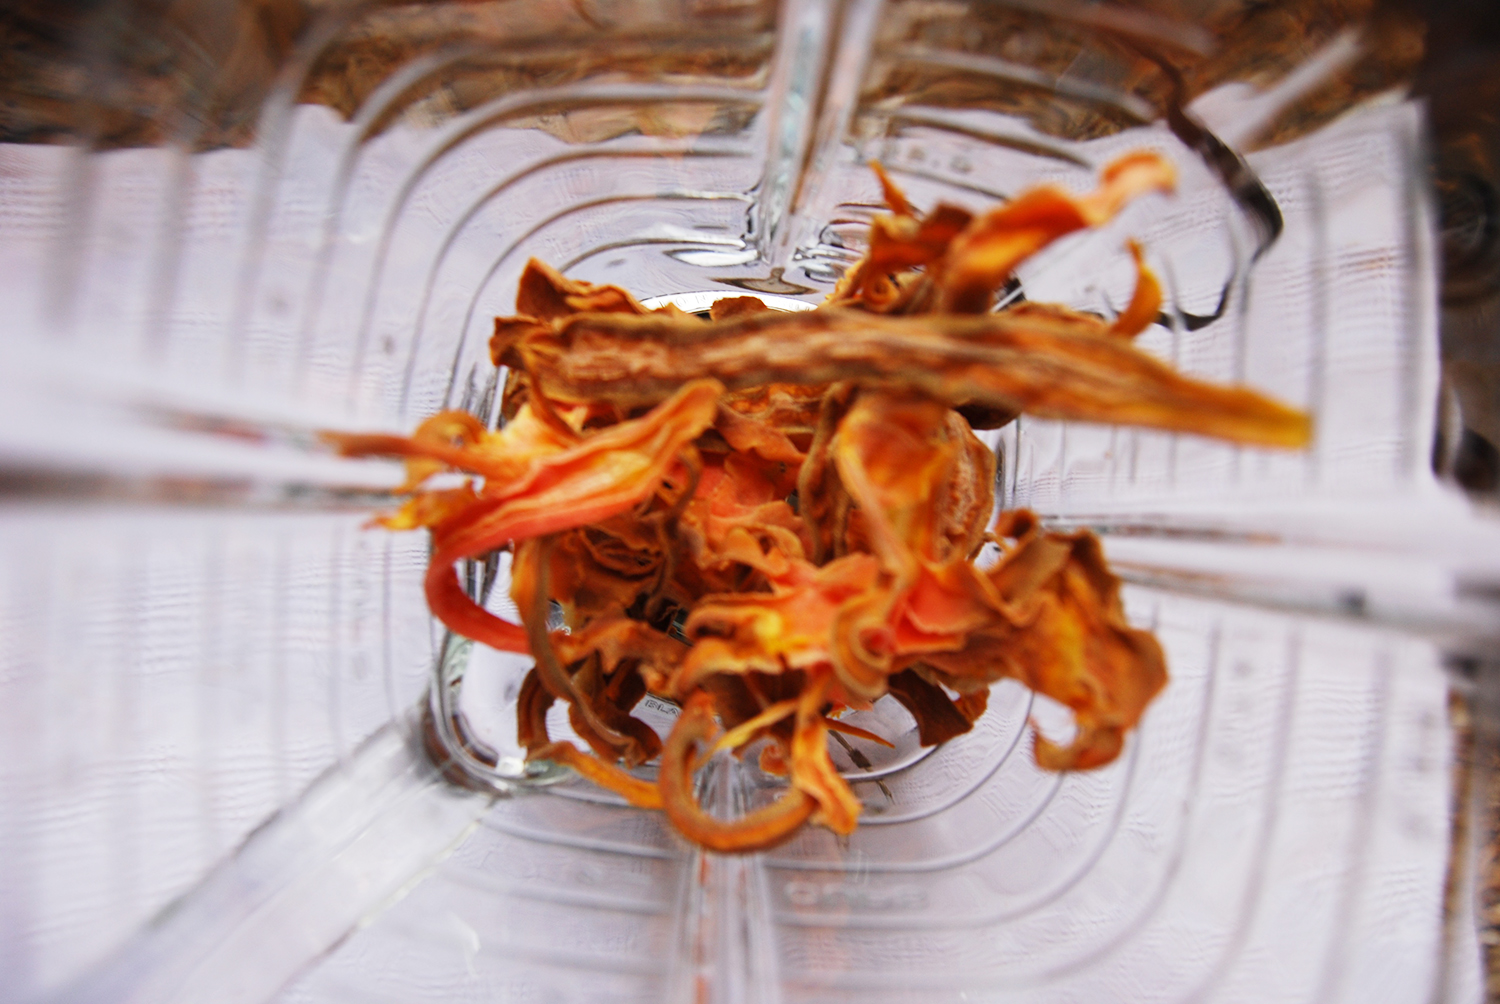 Oven Dried Carrots. The Main Ingredient In The Failed Carrot Cream Cheese Macarons.